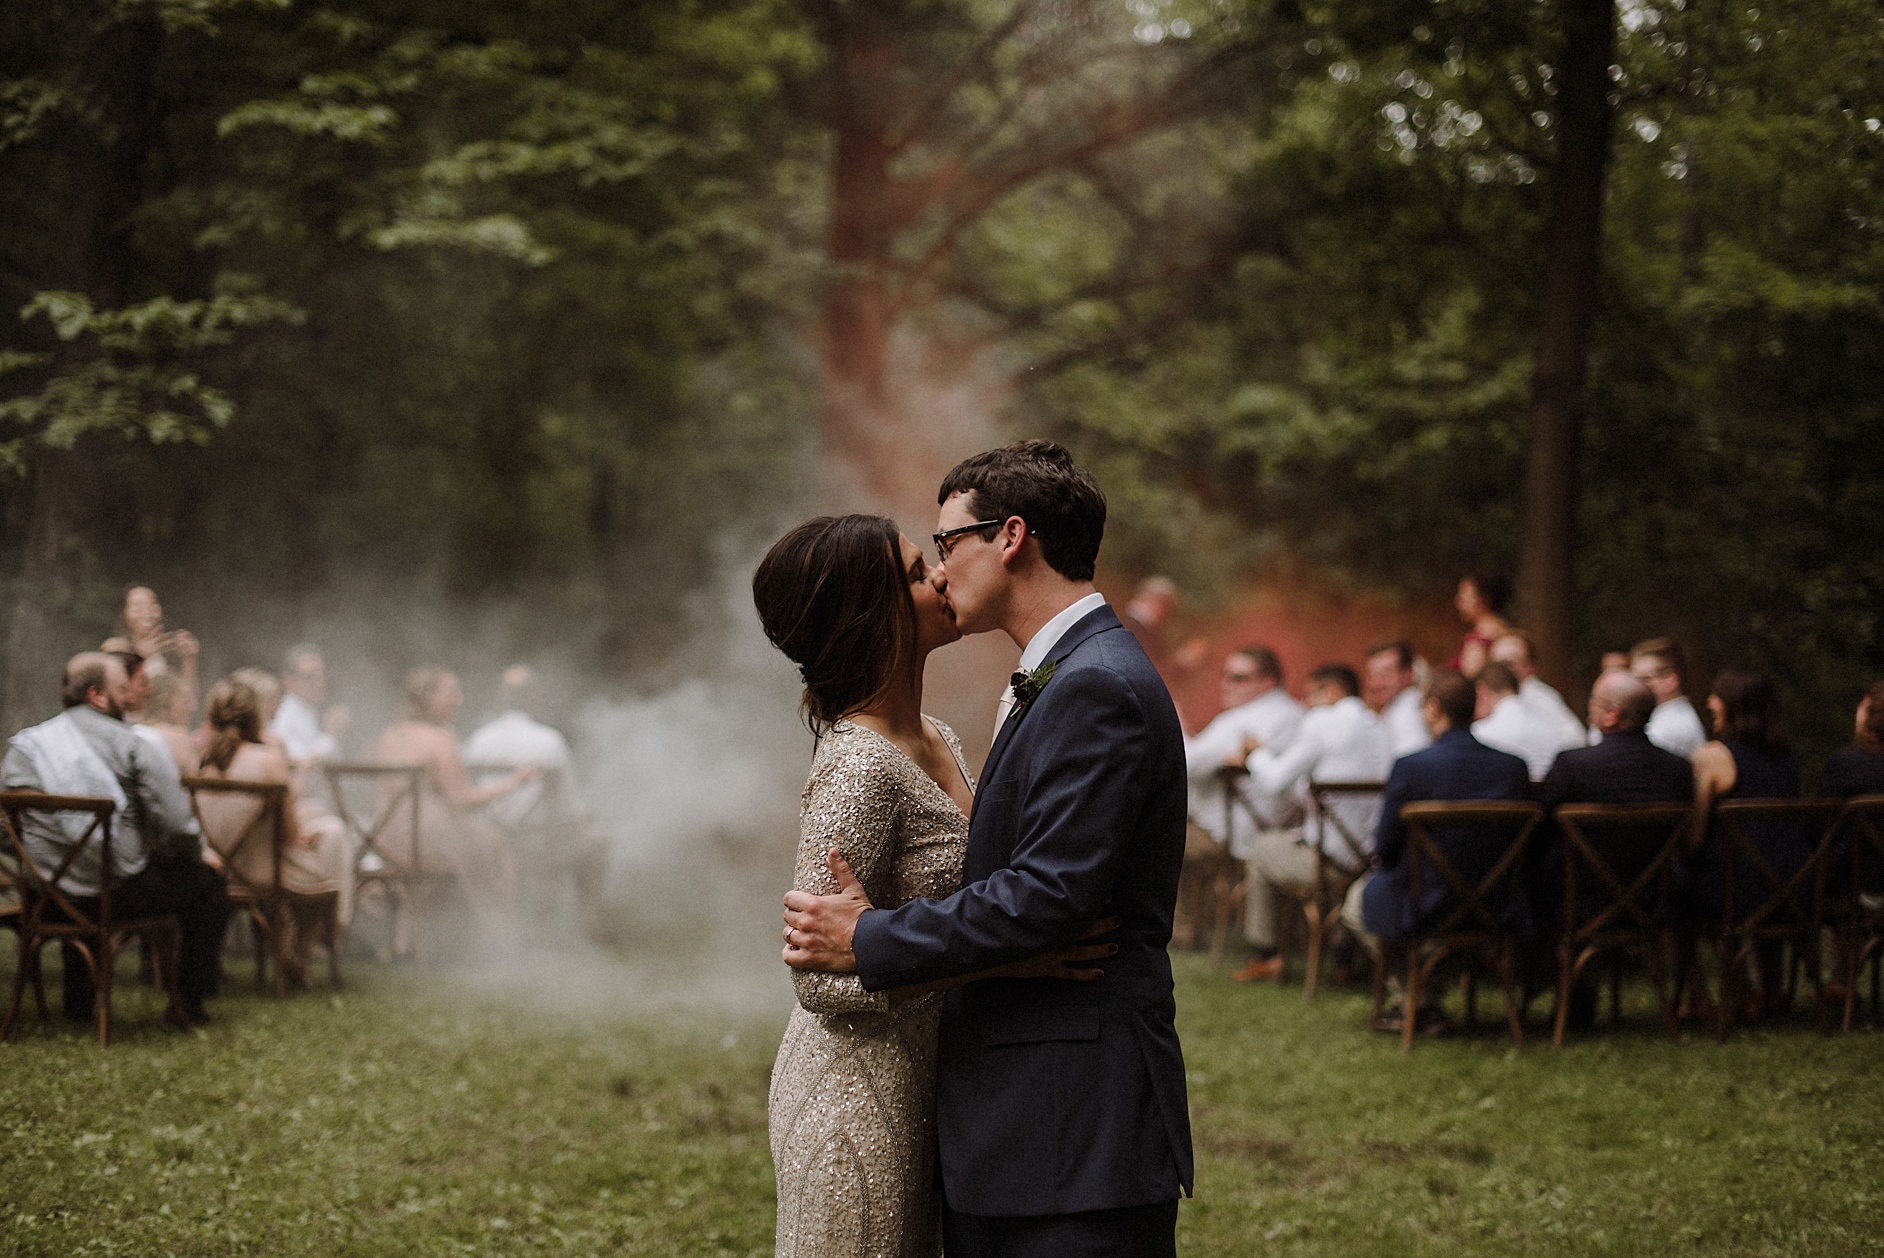 Elopement_Co_Michigan_Wedding-101